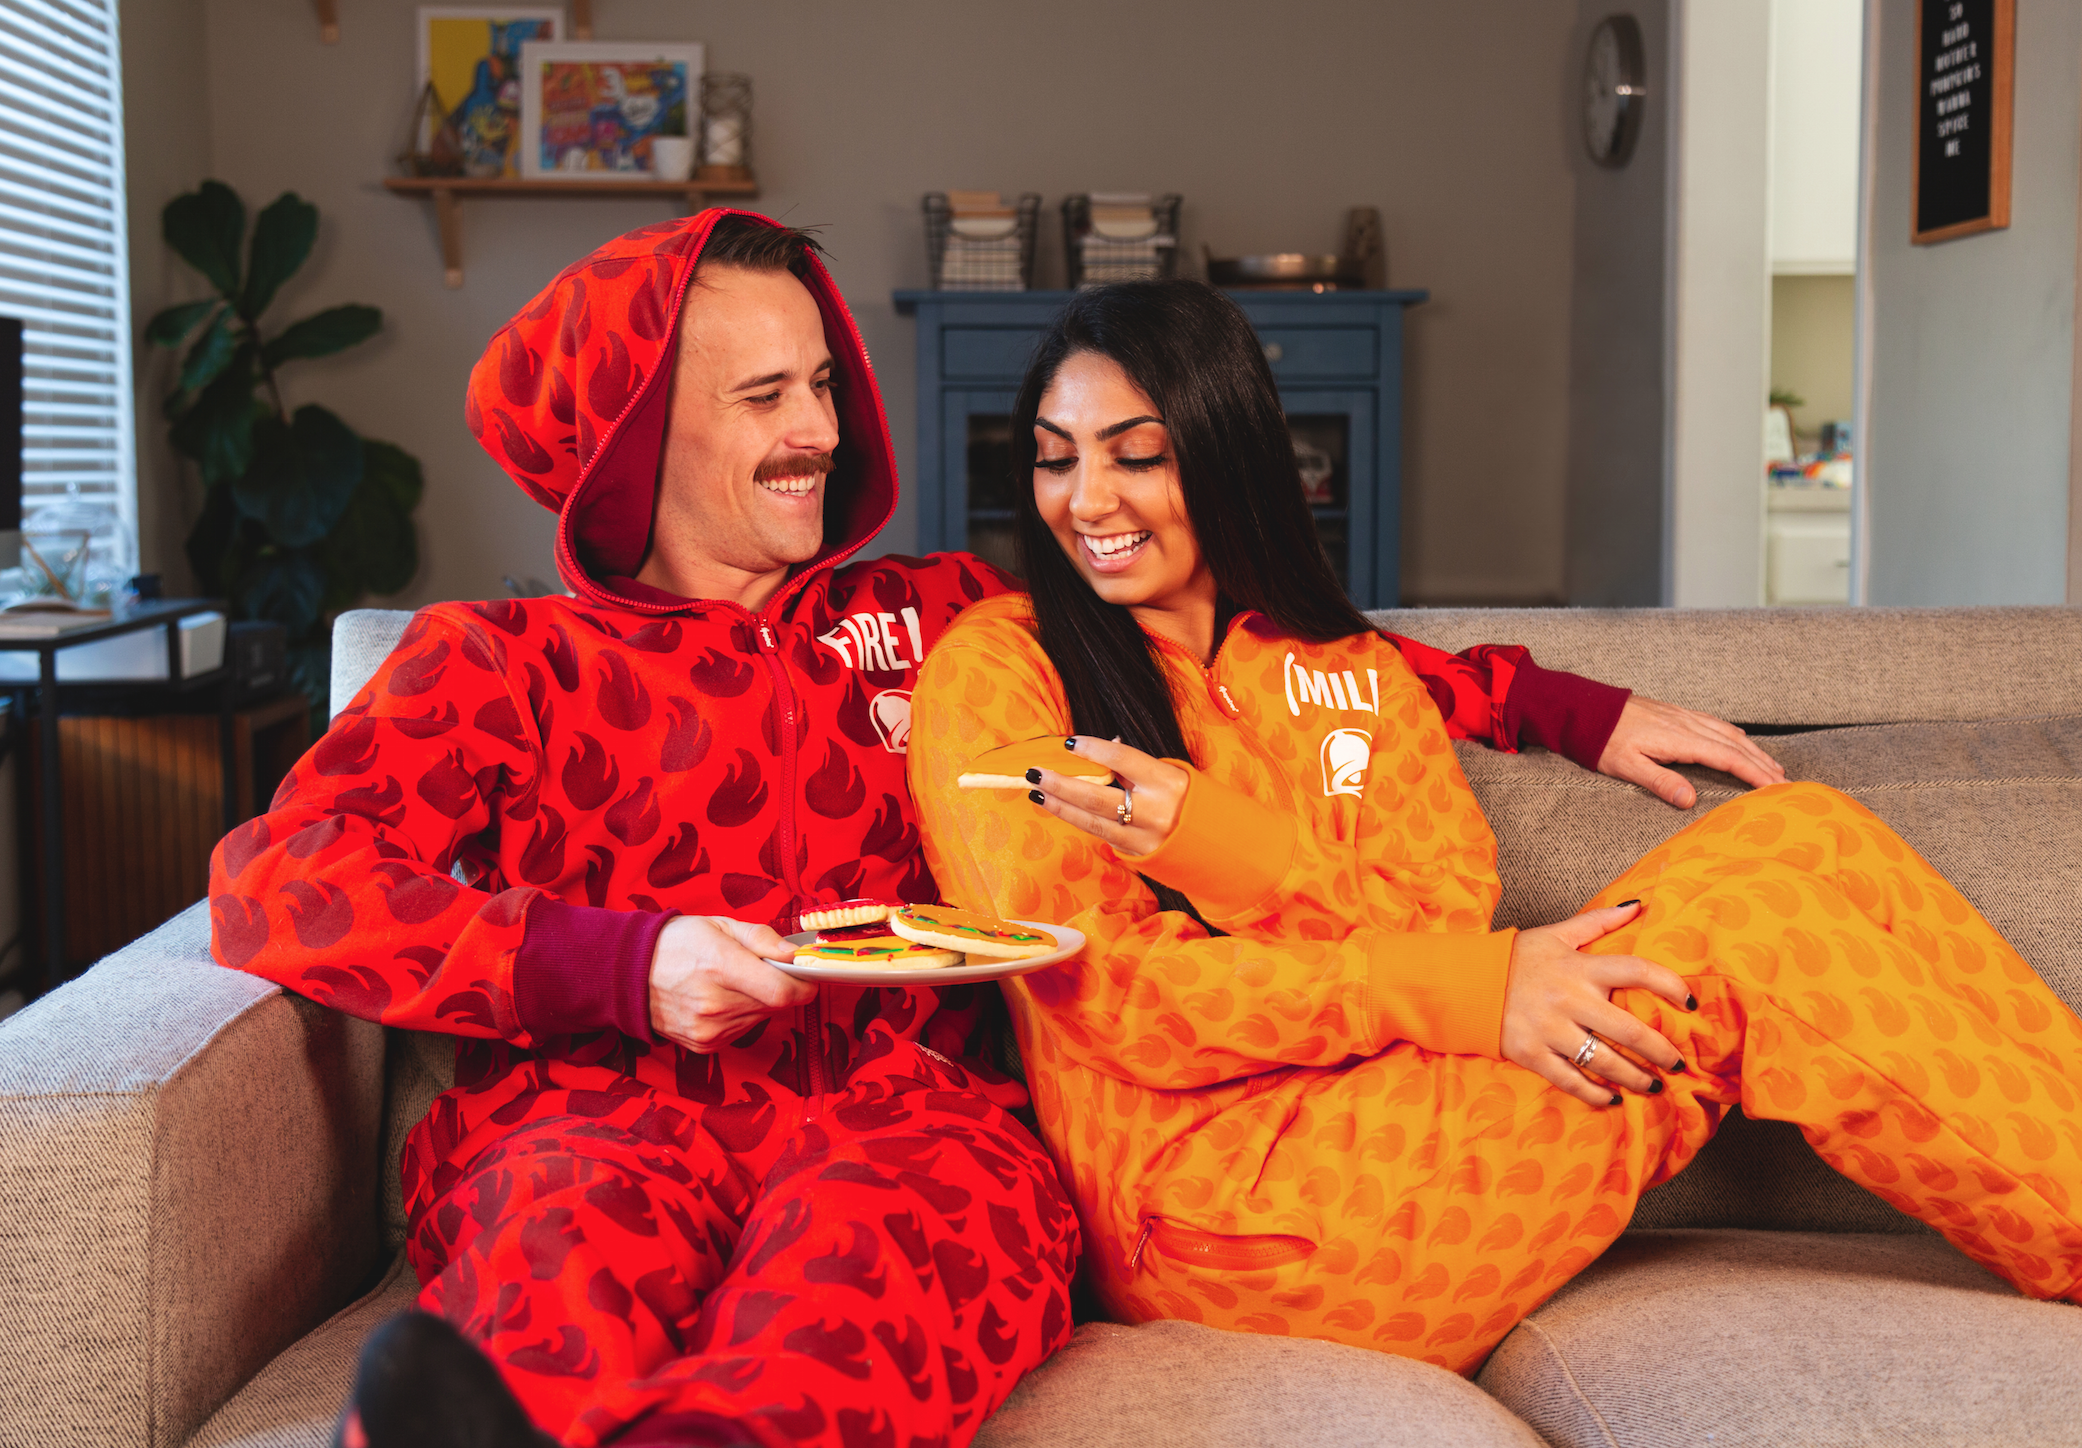 Taco Bell Christmas Eve.Taco Bell S Holiday Collection Includes Hot Sauce Onesies